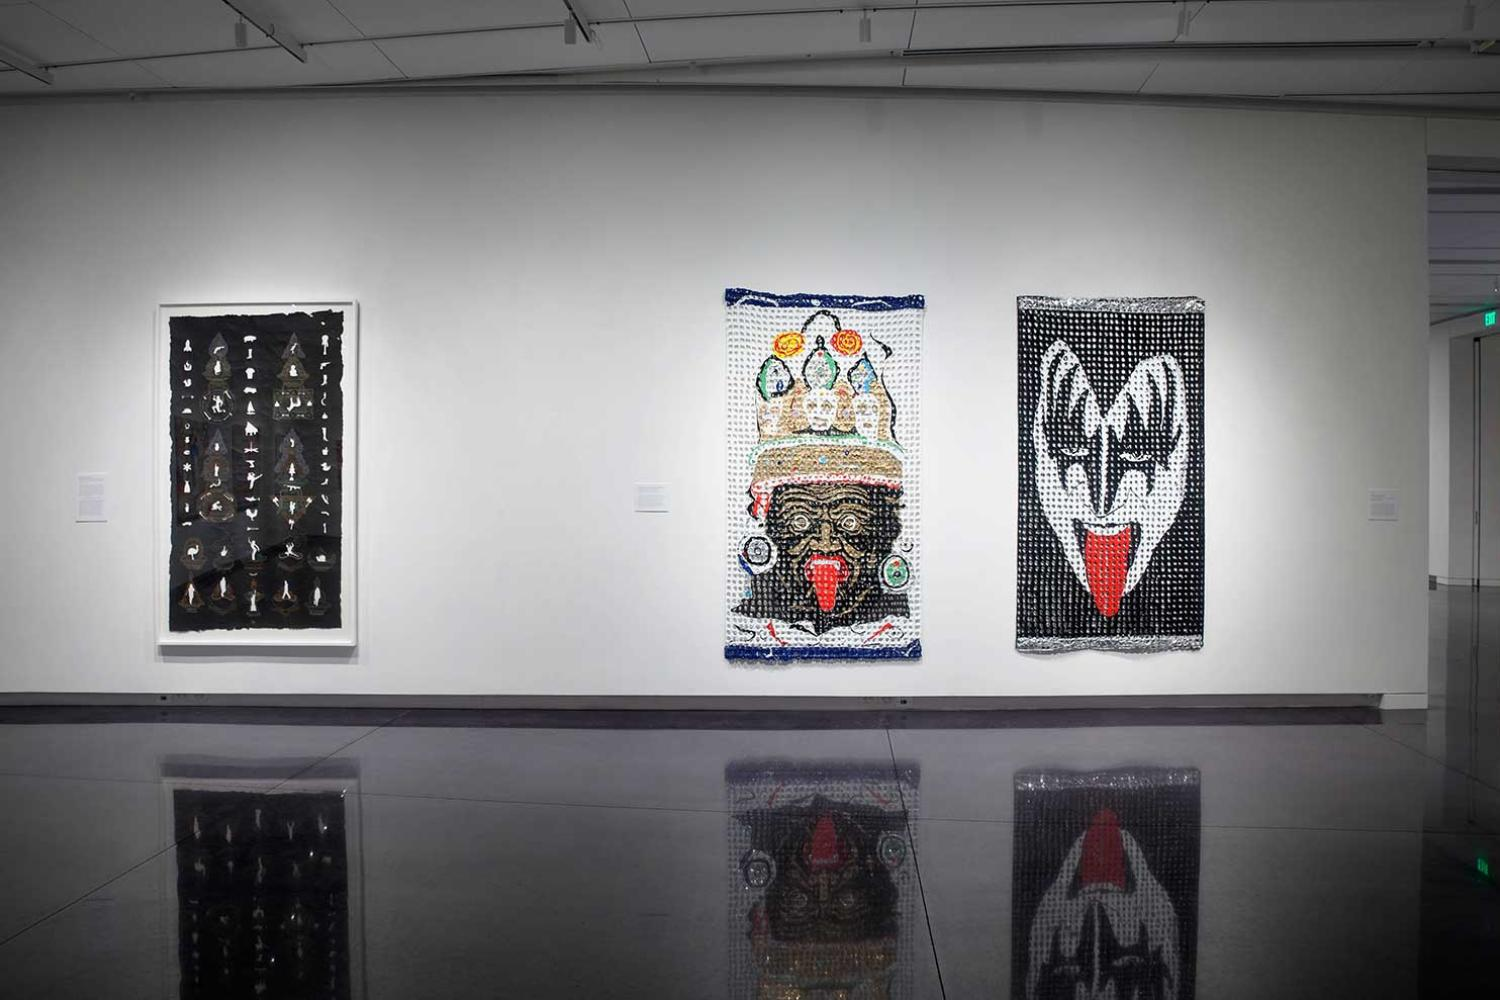 Installation view of three large artworks hung together